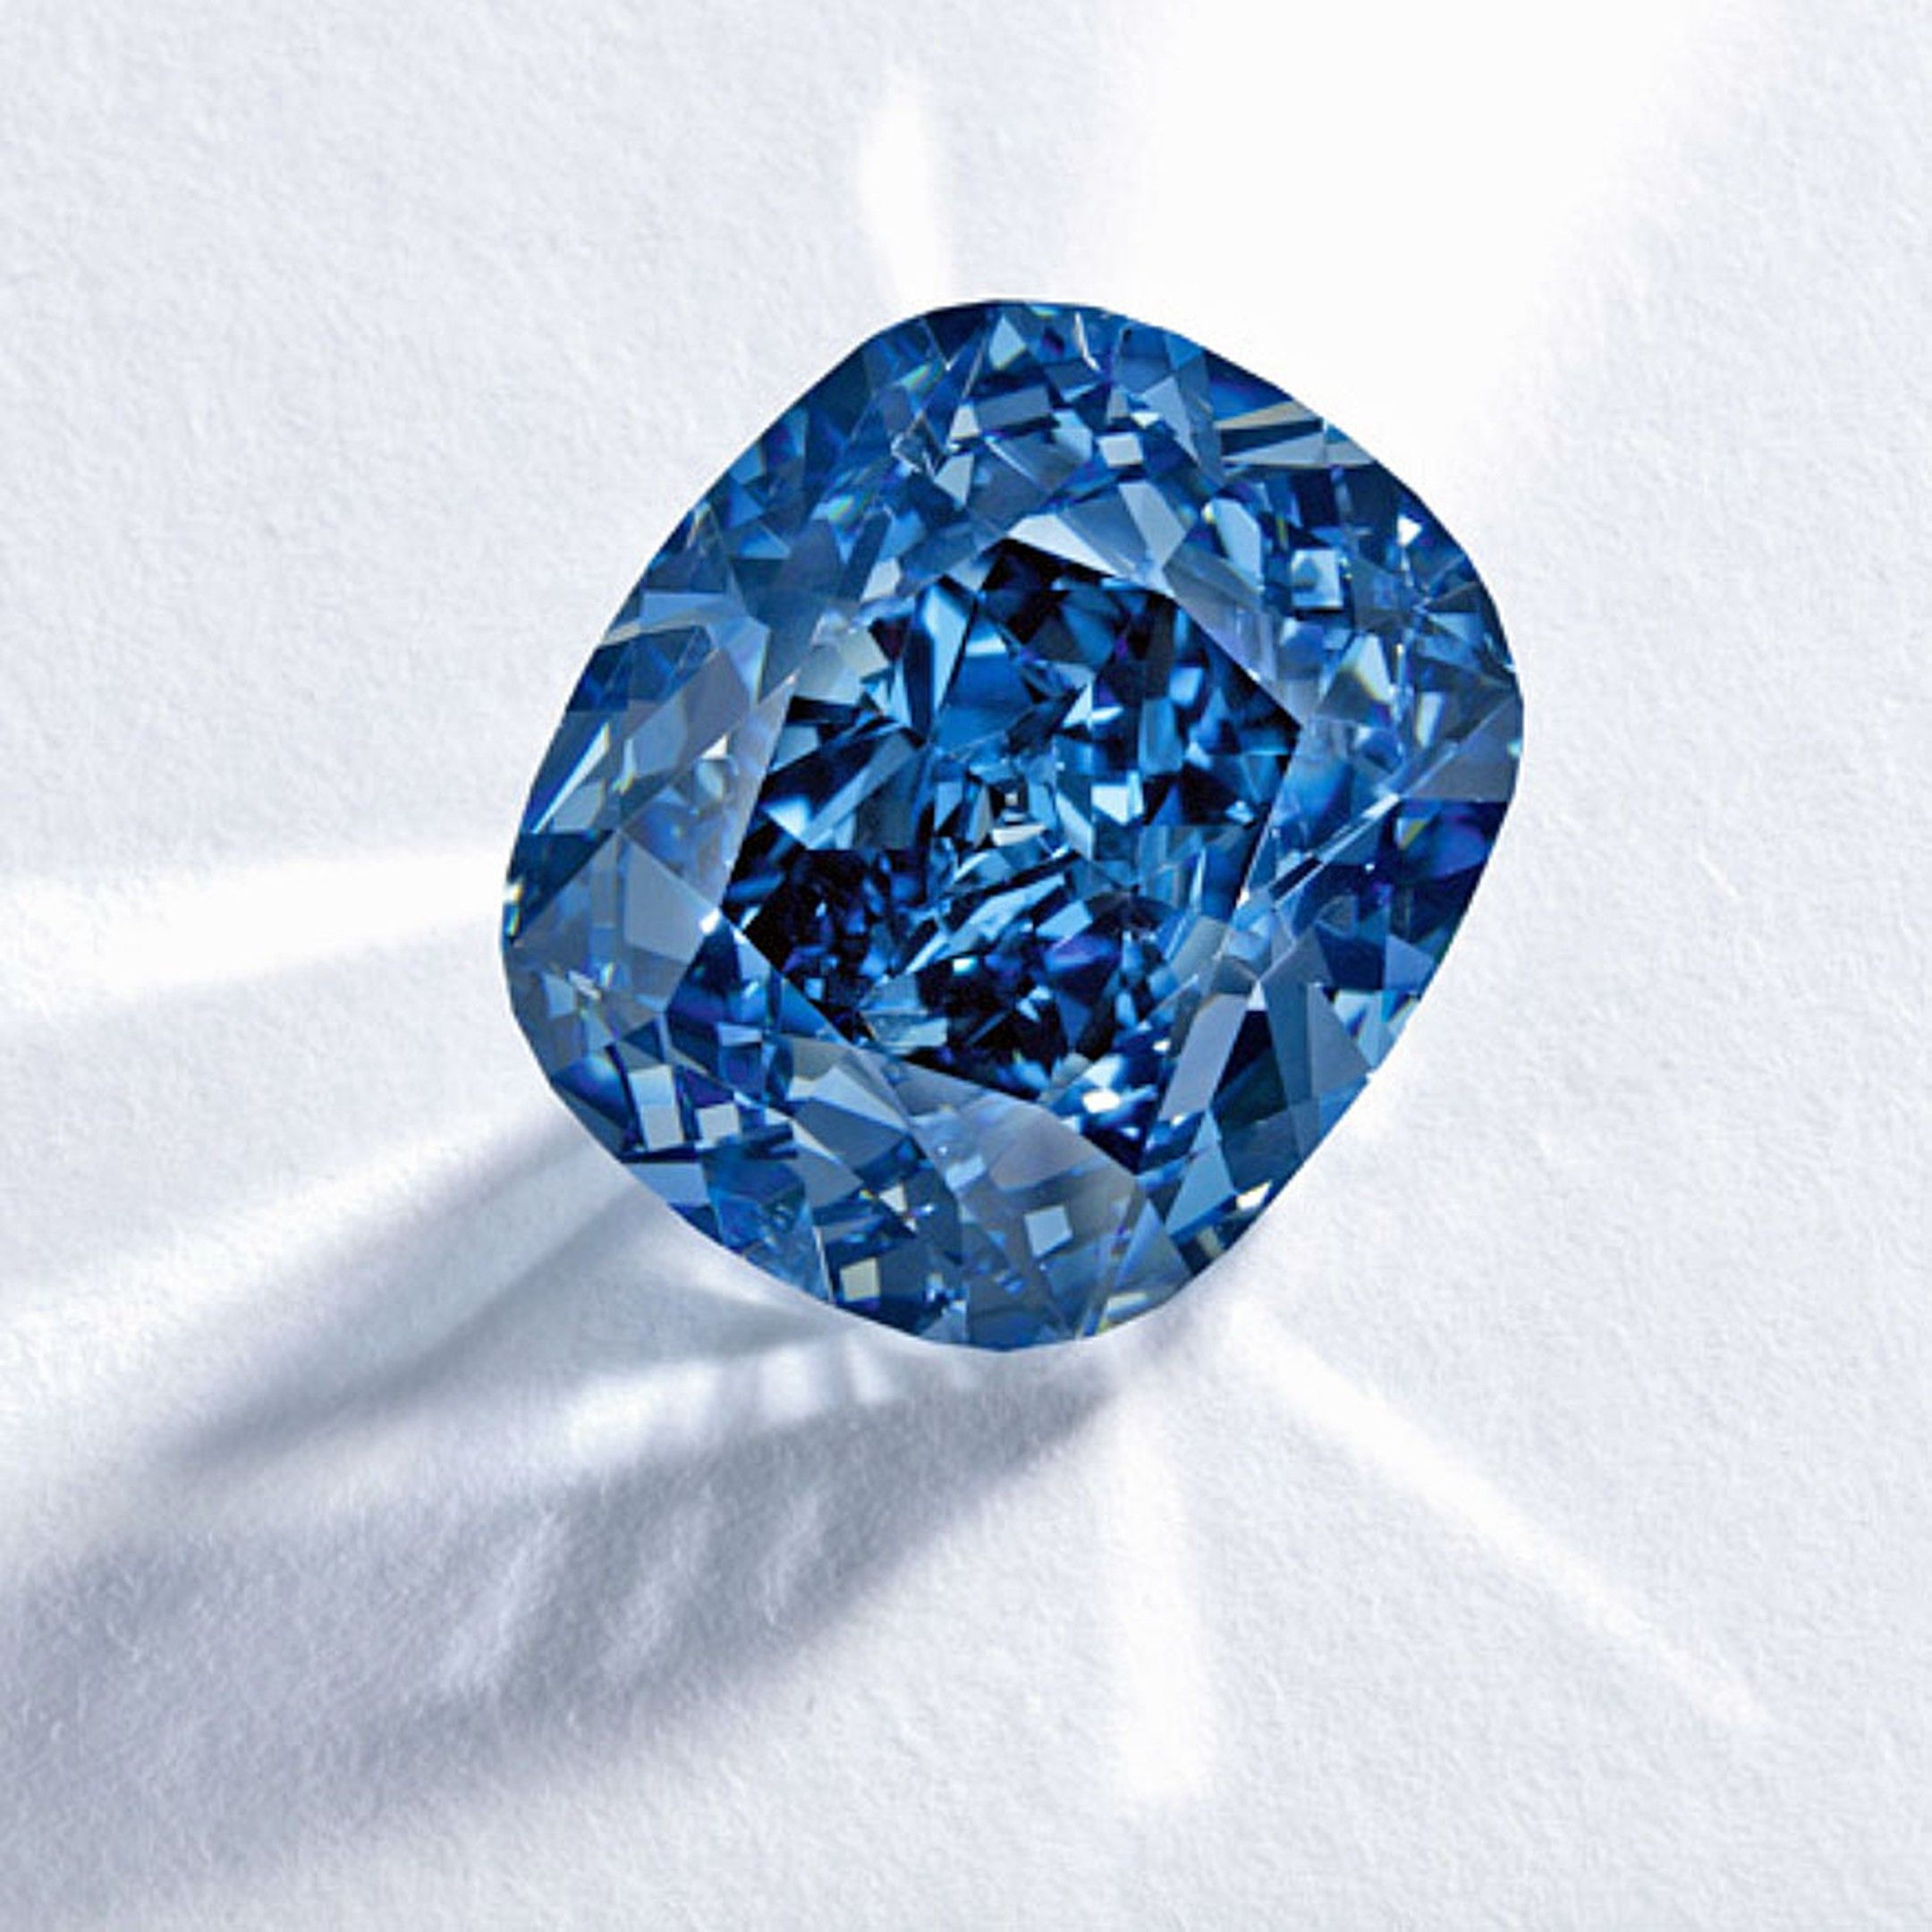 rough ct cullinan christies diamonds the oppenheimer petra with stands diamond christie offering of blue expertise s out items unique dream